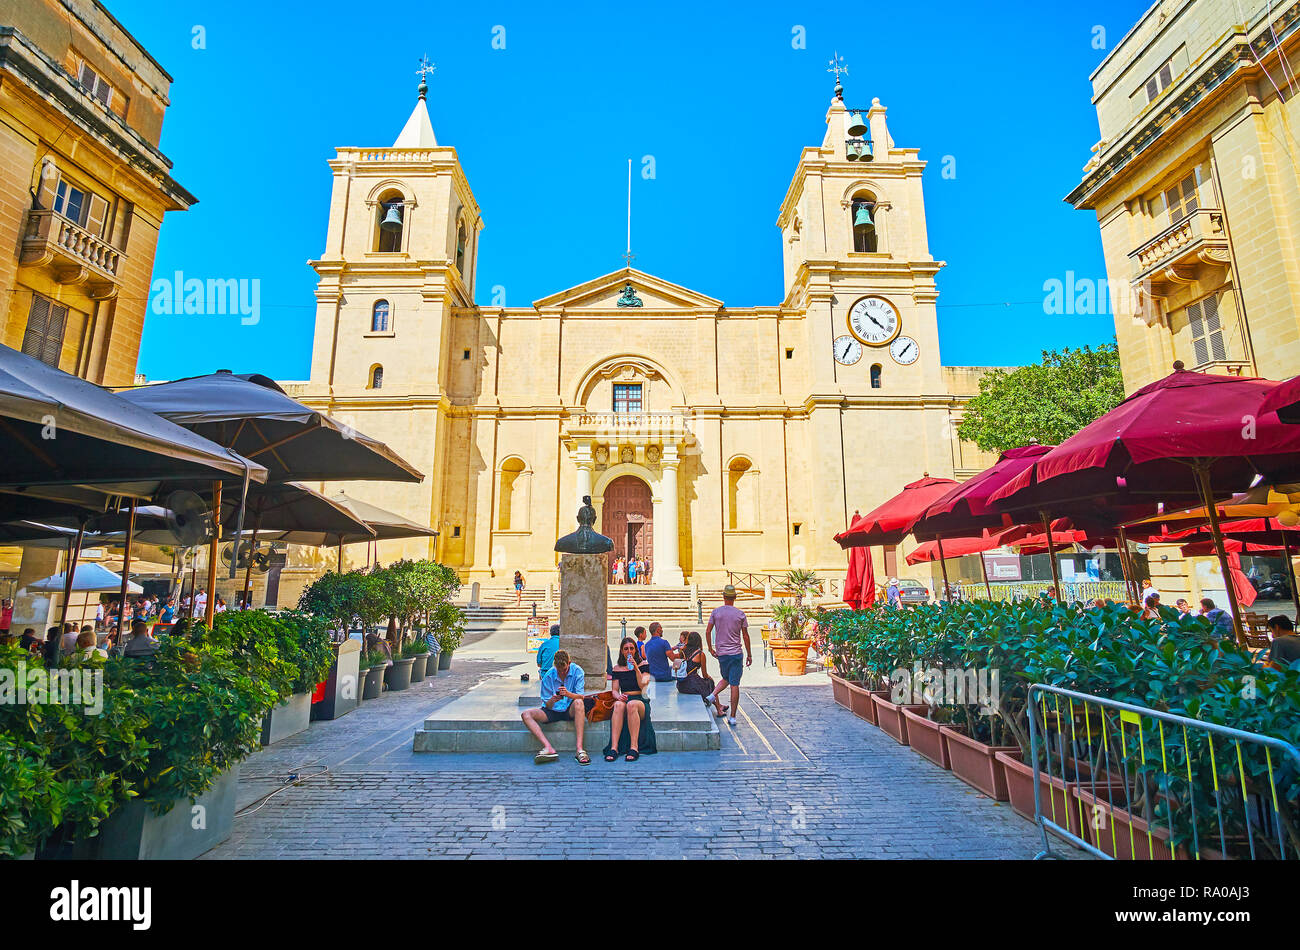 VALLETTA, MALTA - JUNE 18, 2018: The frontage of St John Co-Cathedral with its huge bell towers from the same named square, occupied with outdoor tour - Stock Image